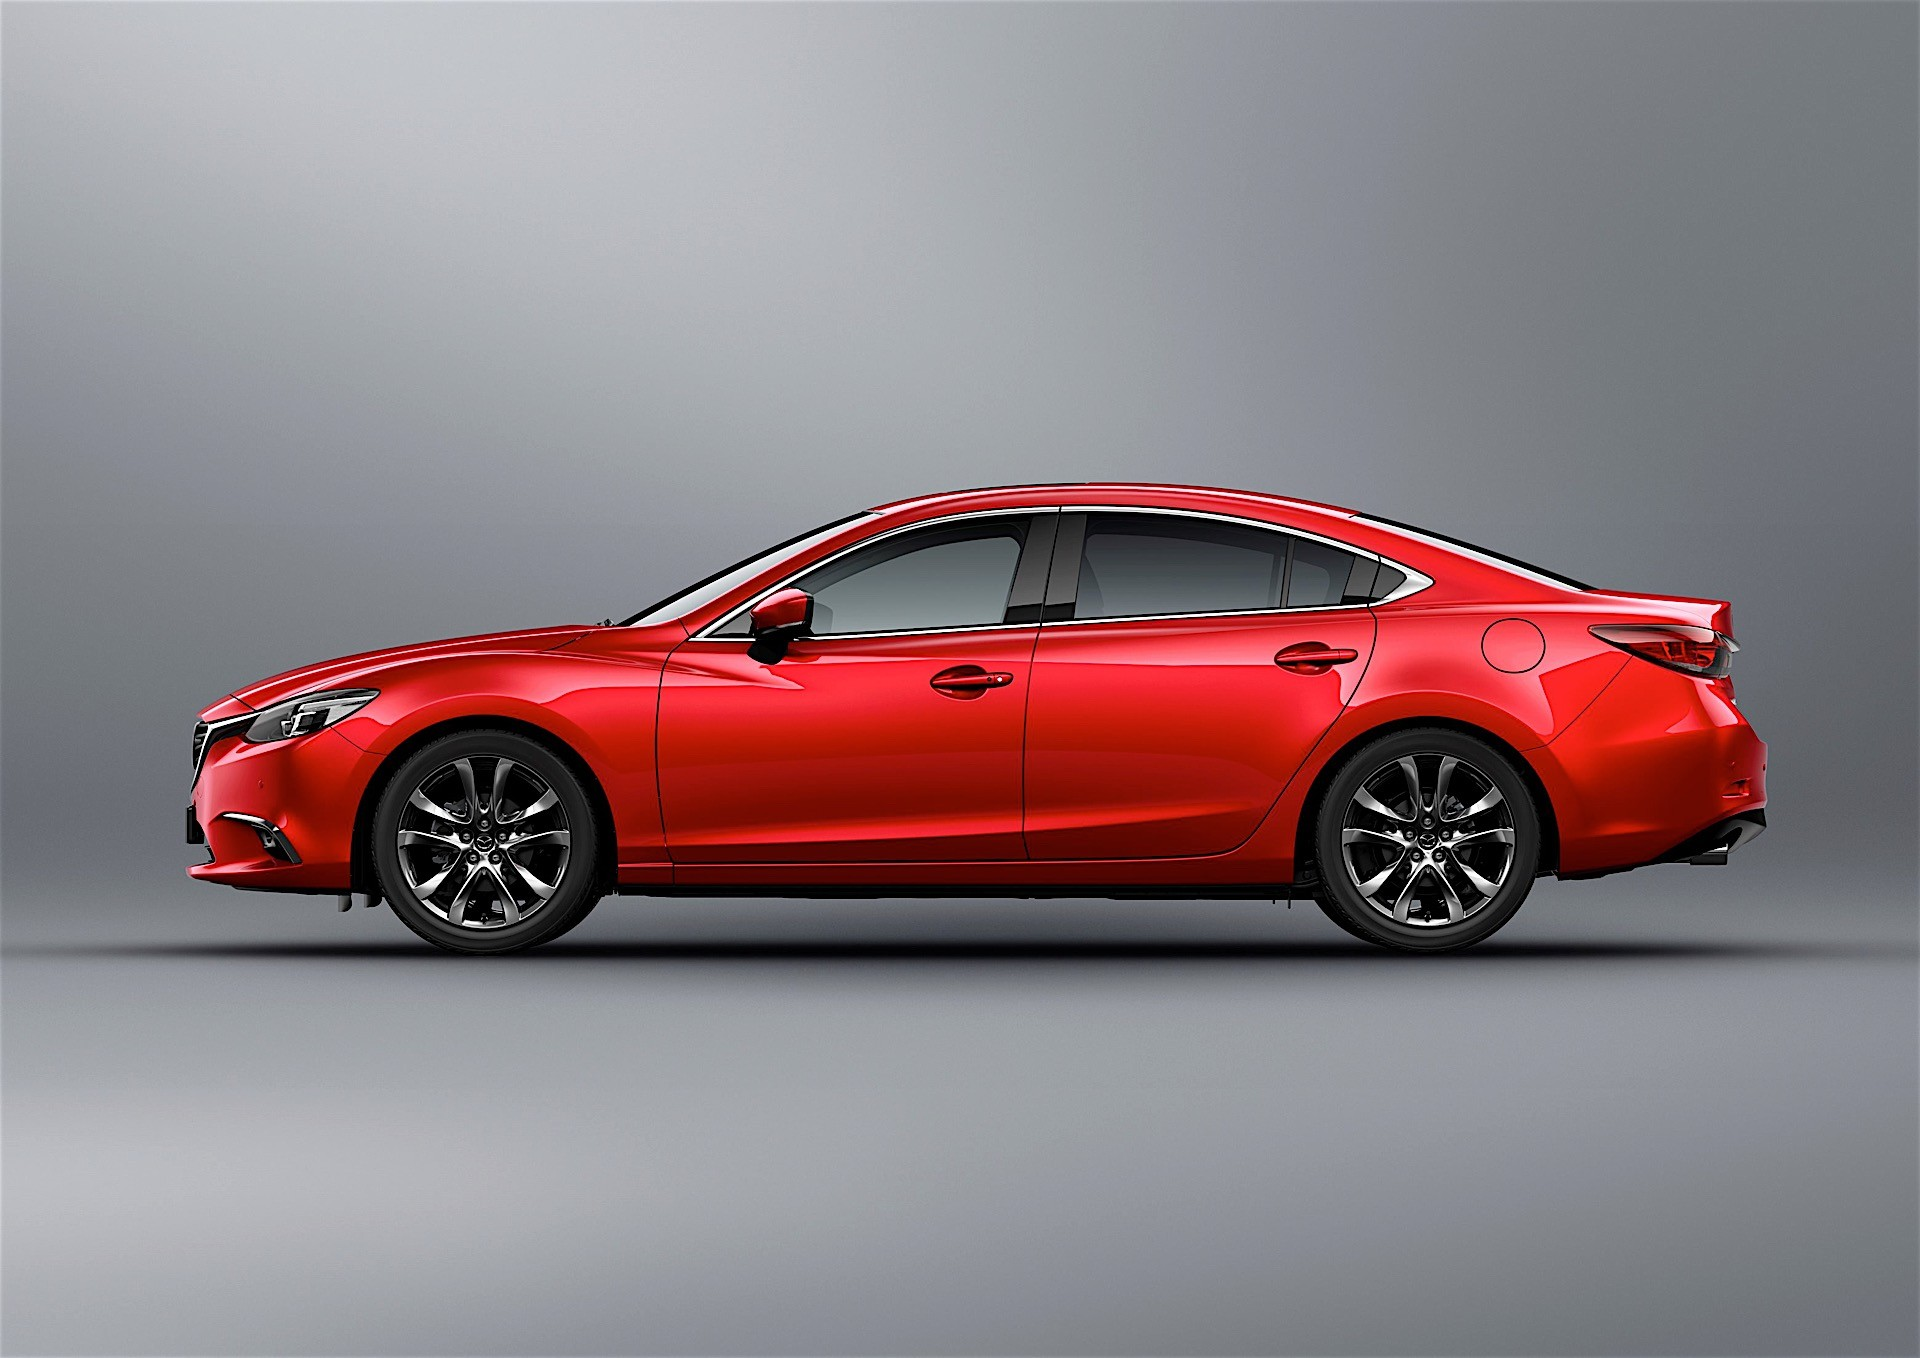 2017 mazda6 priced from 21 945 in the us autoevolution. Black Bedroom Furniture Sets. Home Design Ideas